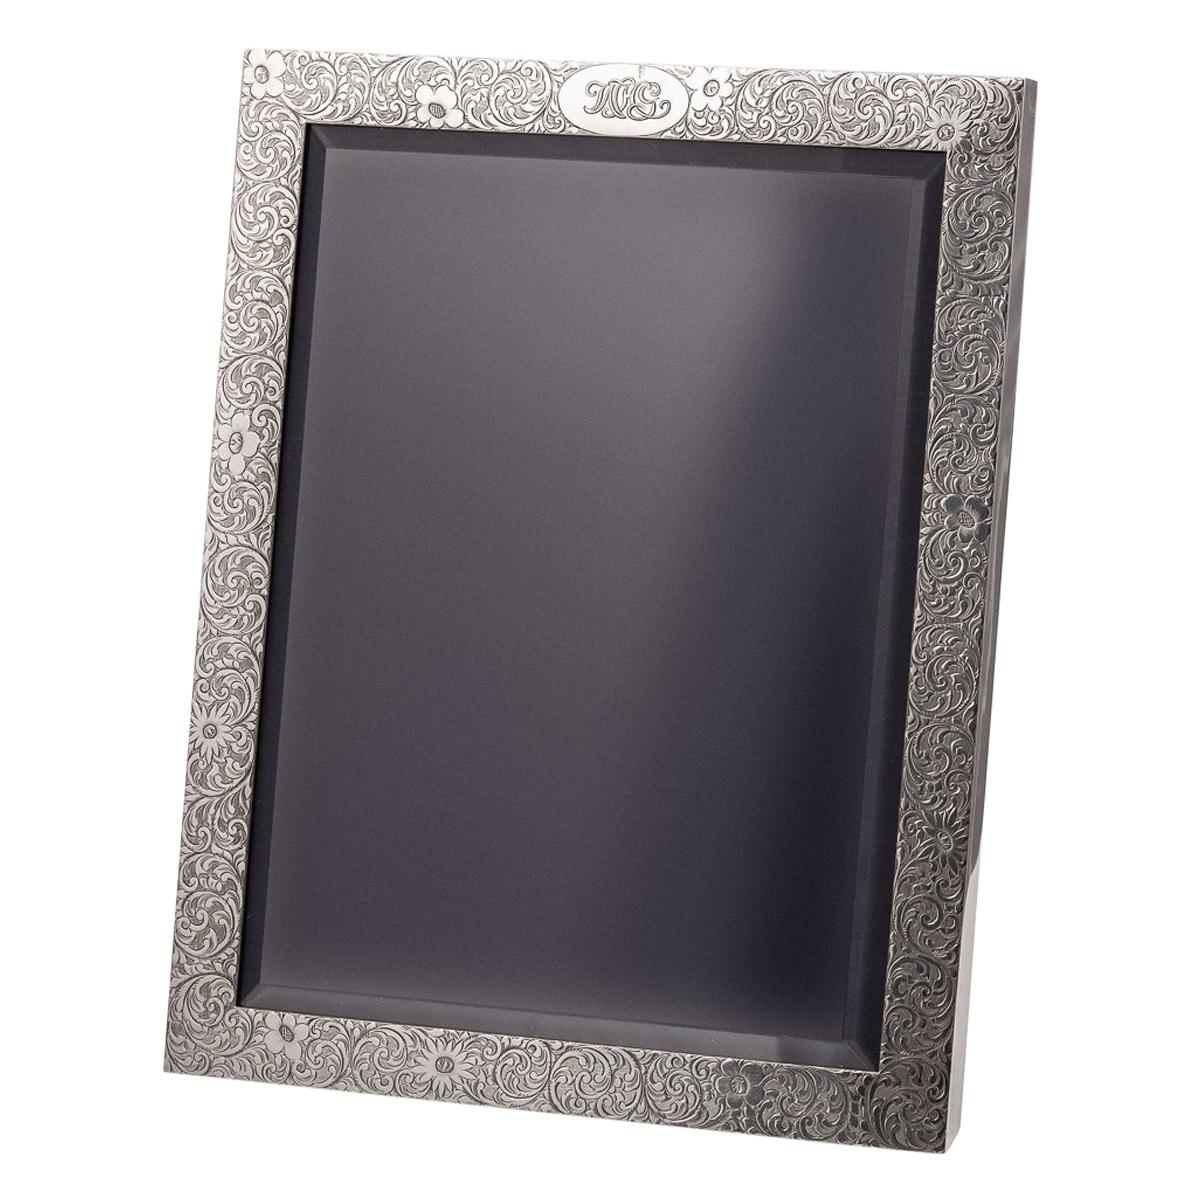 20th Century Tiffany & Co. Solid Silver Large Photo Frame, circa 1908